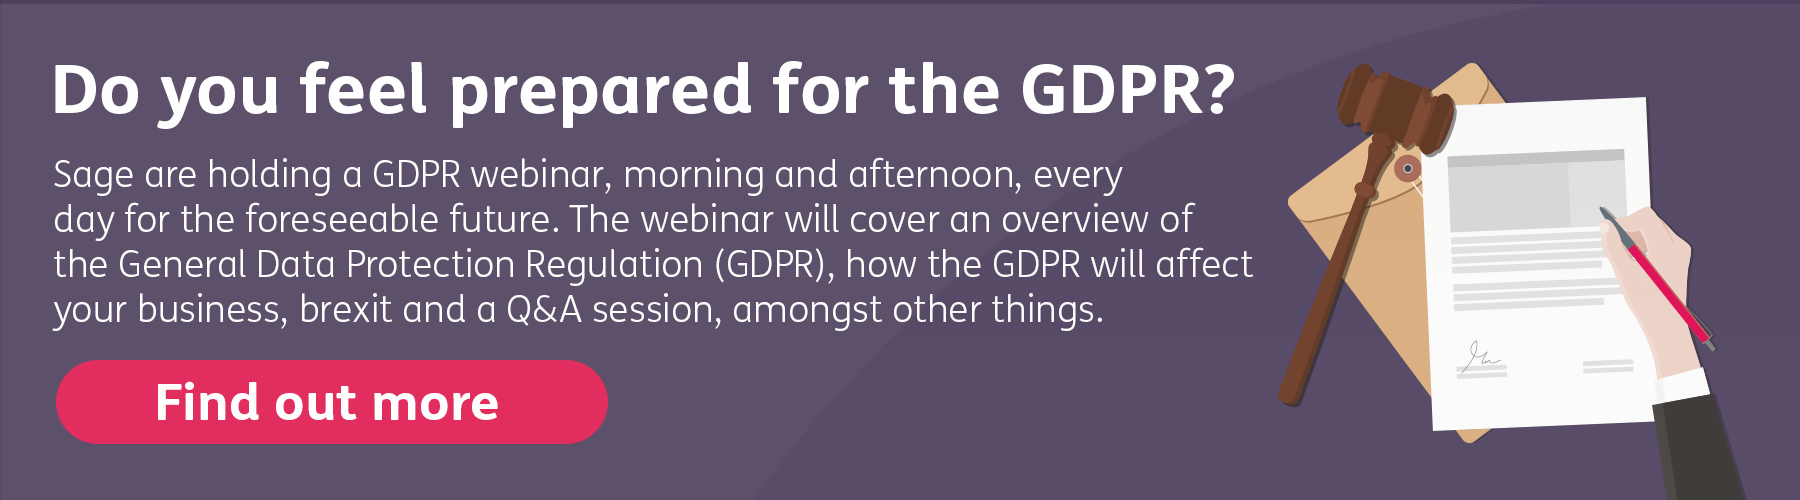 GDPR---how-will-it-affect-your-business-webinar